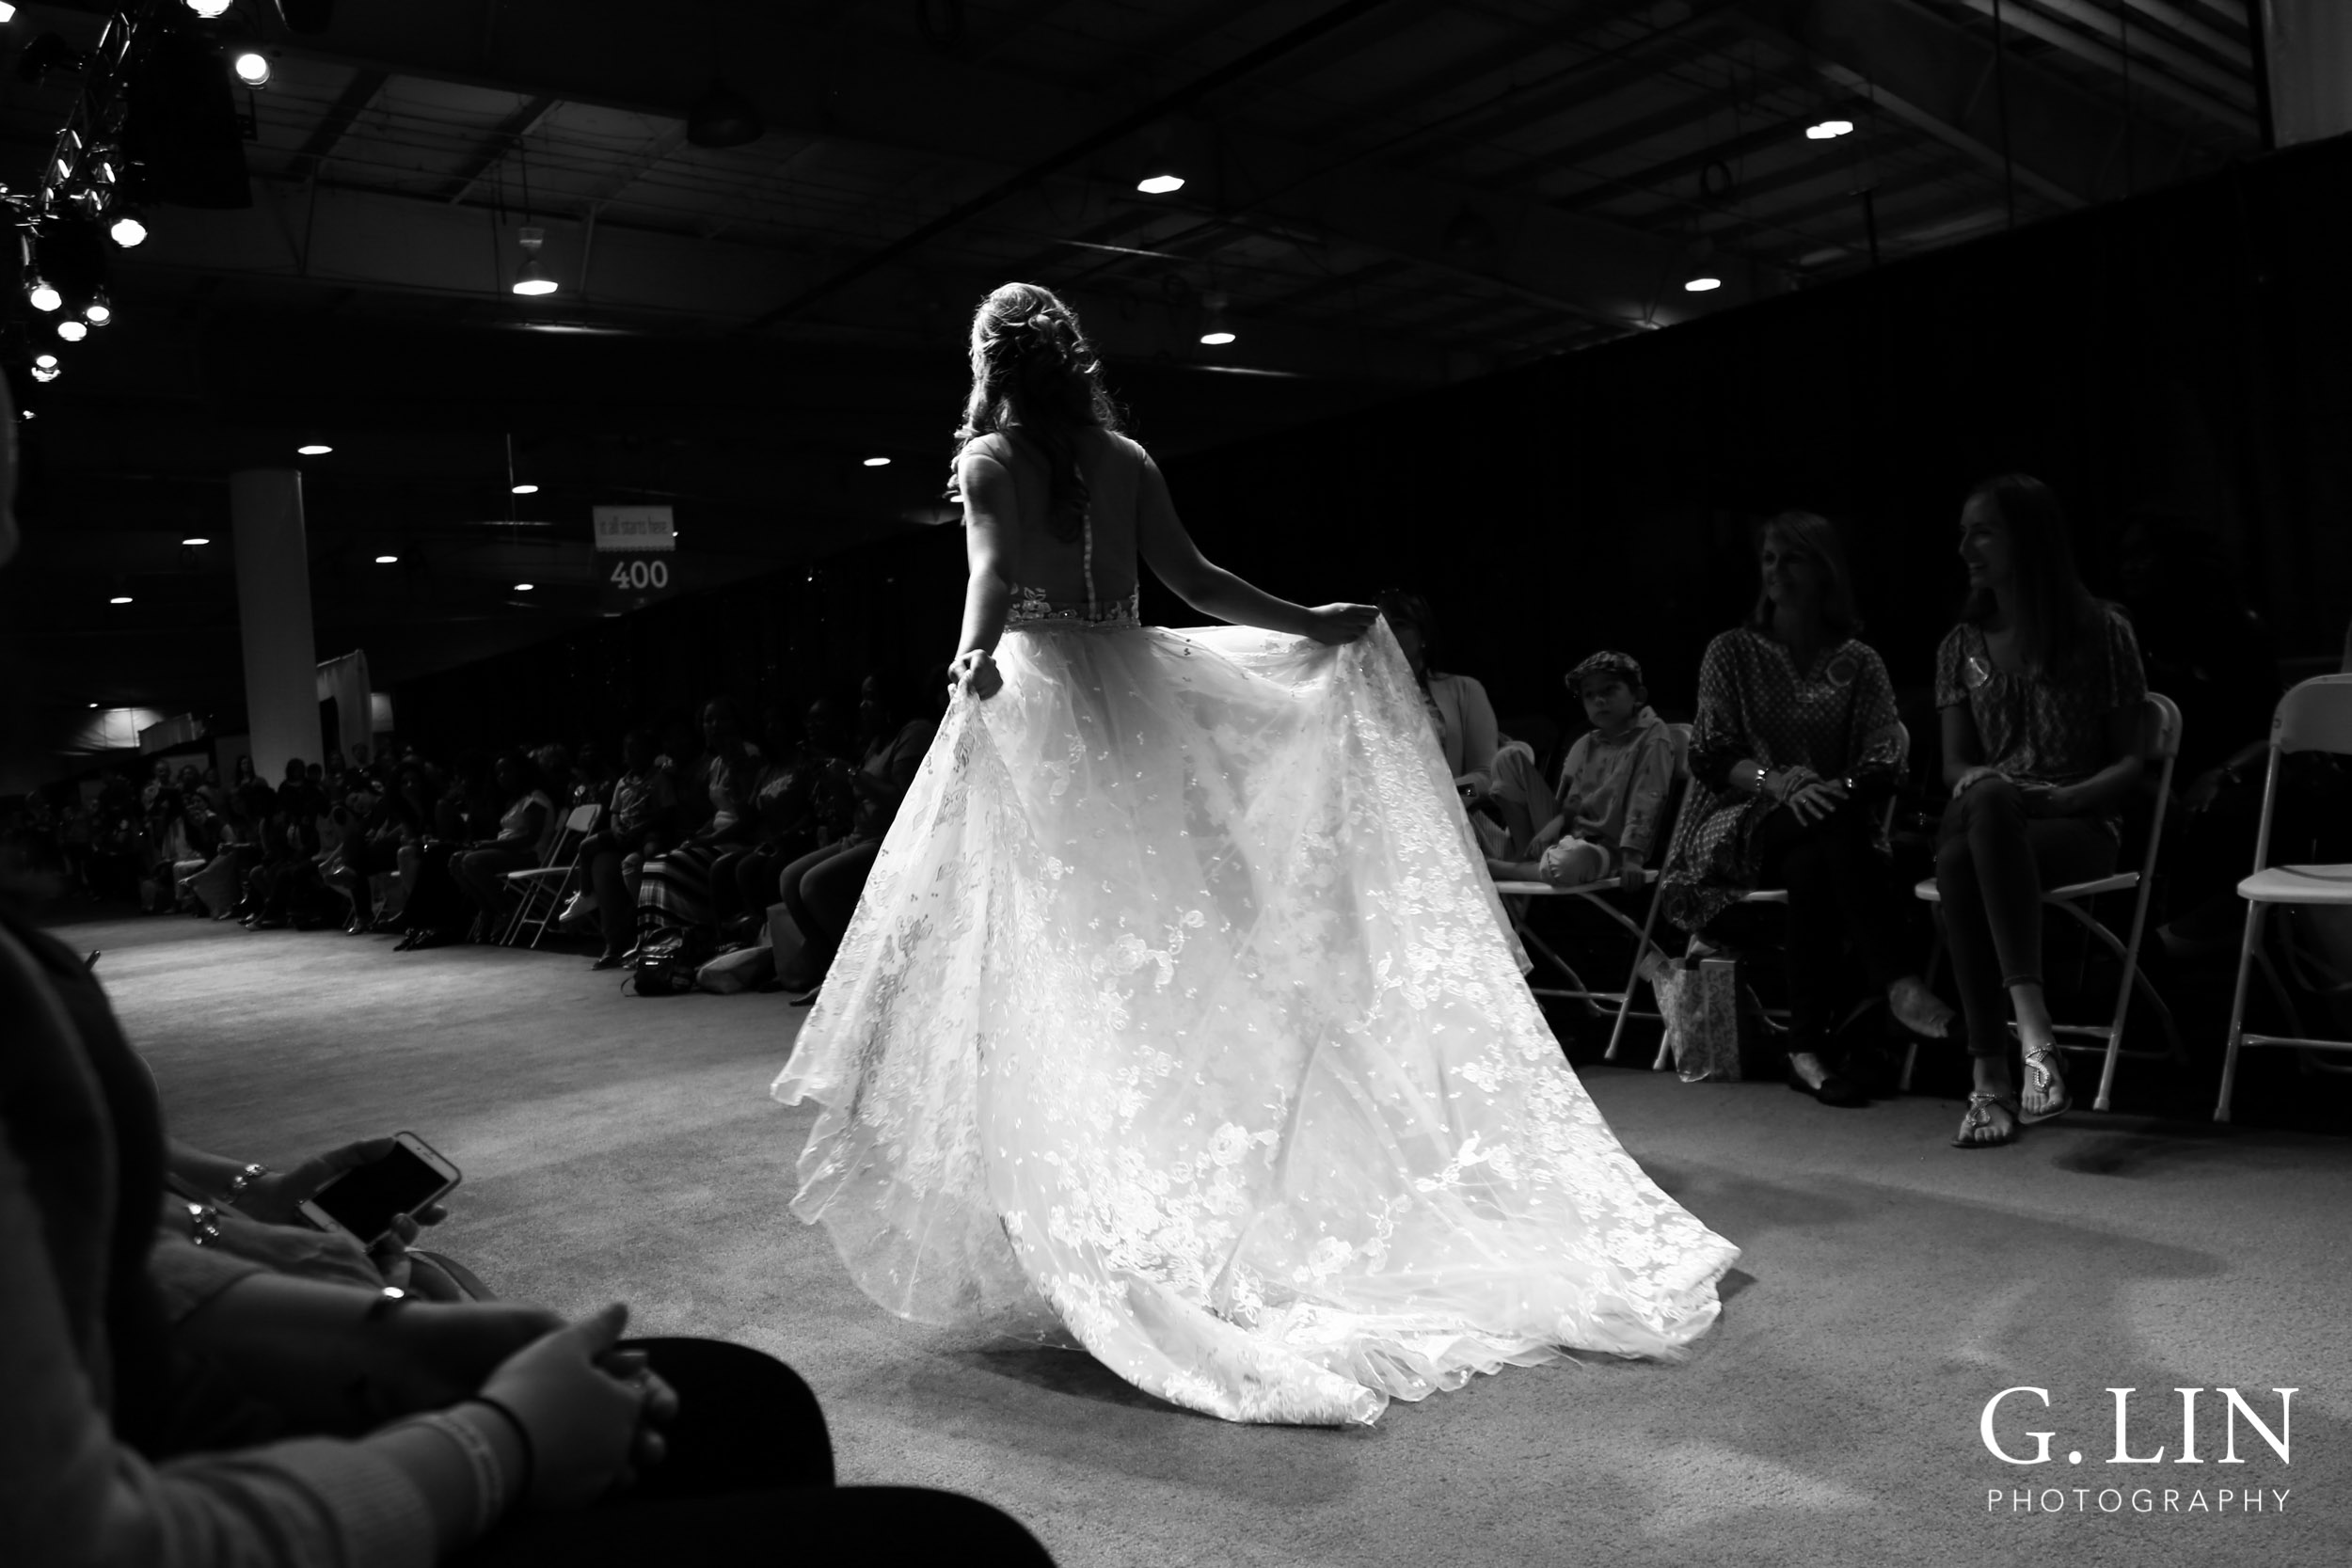 Raleigh Event Photographer | G. Lin Photography | Black and white photo of model walking down runway holding dress